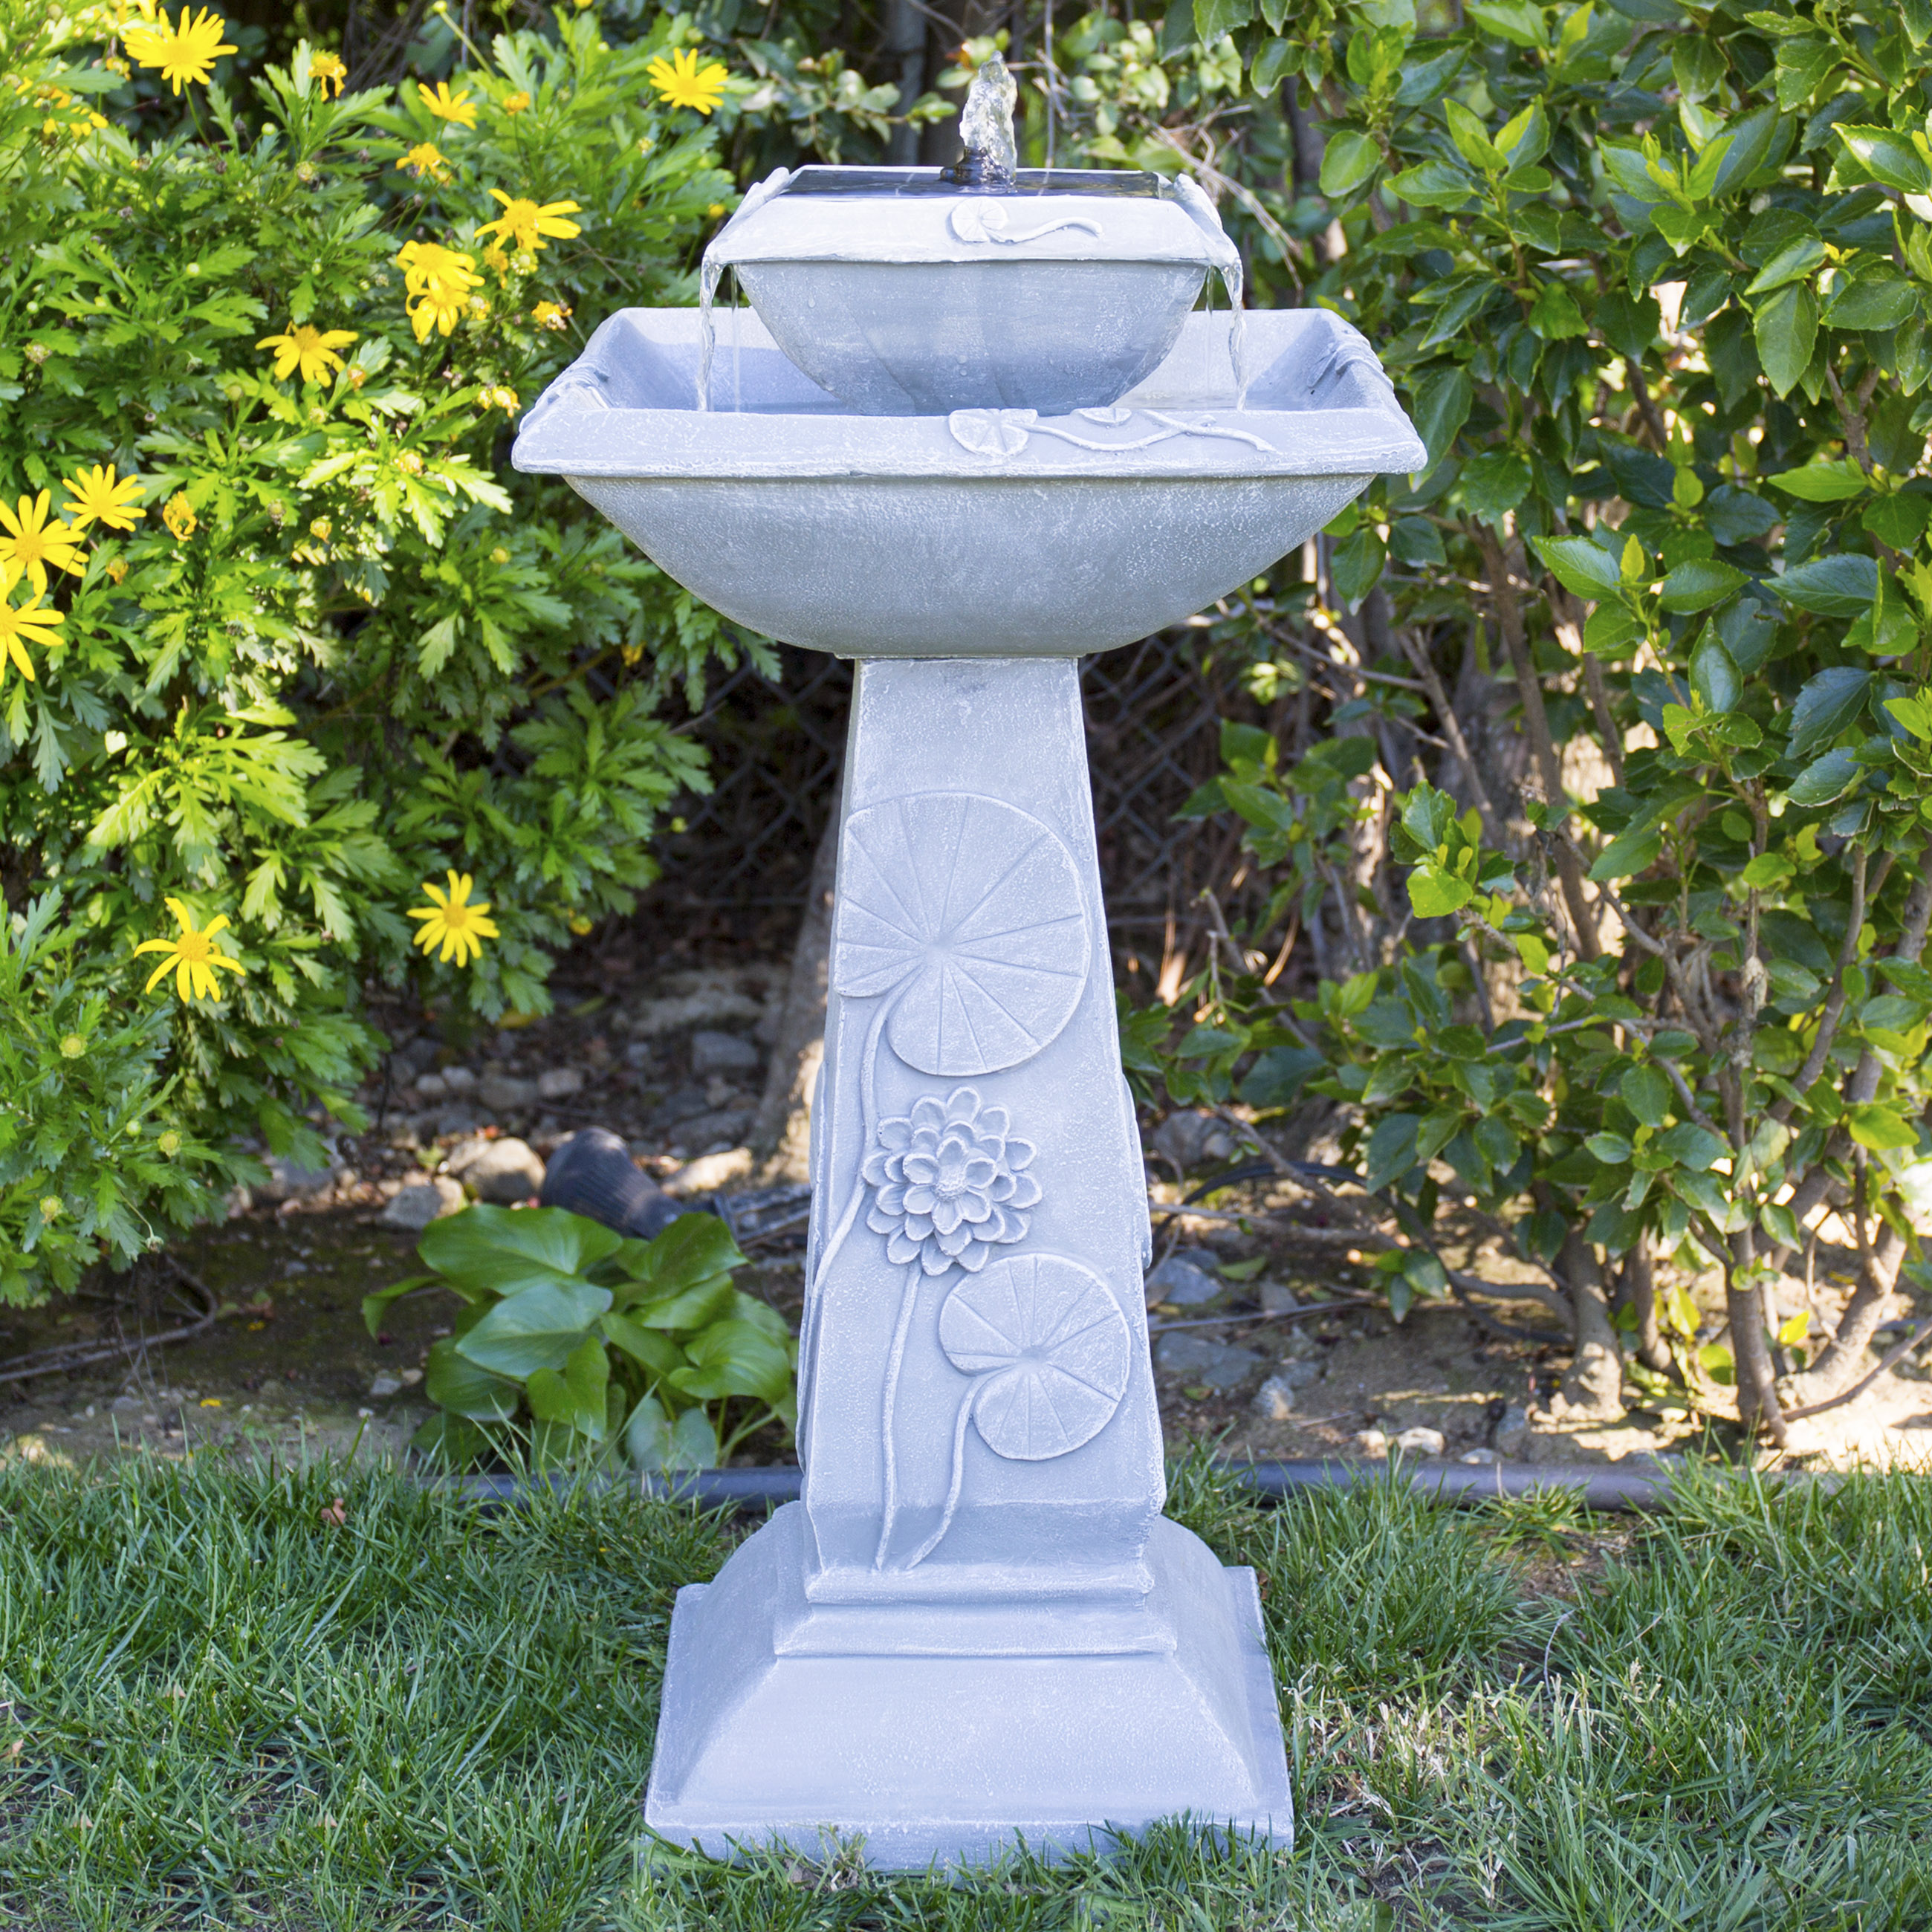 Best Choice Products 2-Tier Solar Bird Bath Fountain With LED Lights And Integrated Solar Panel